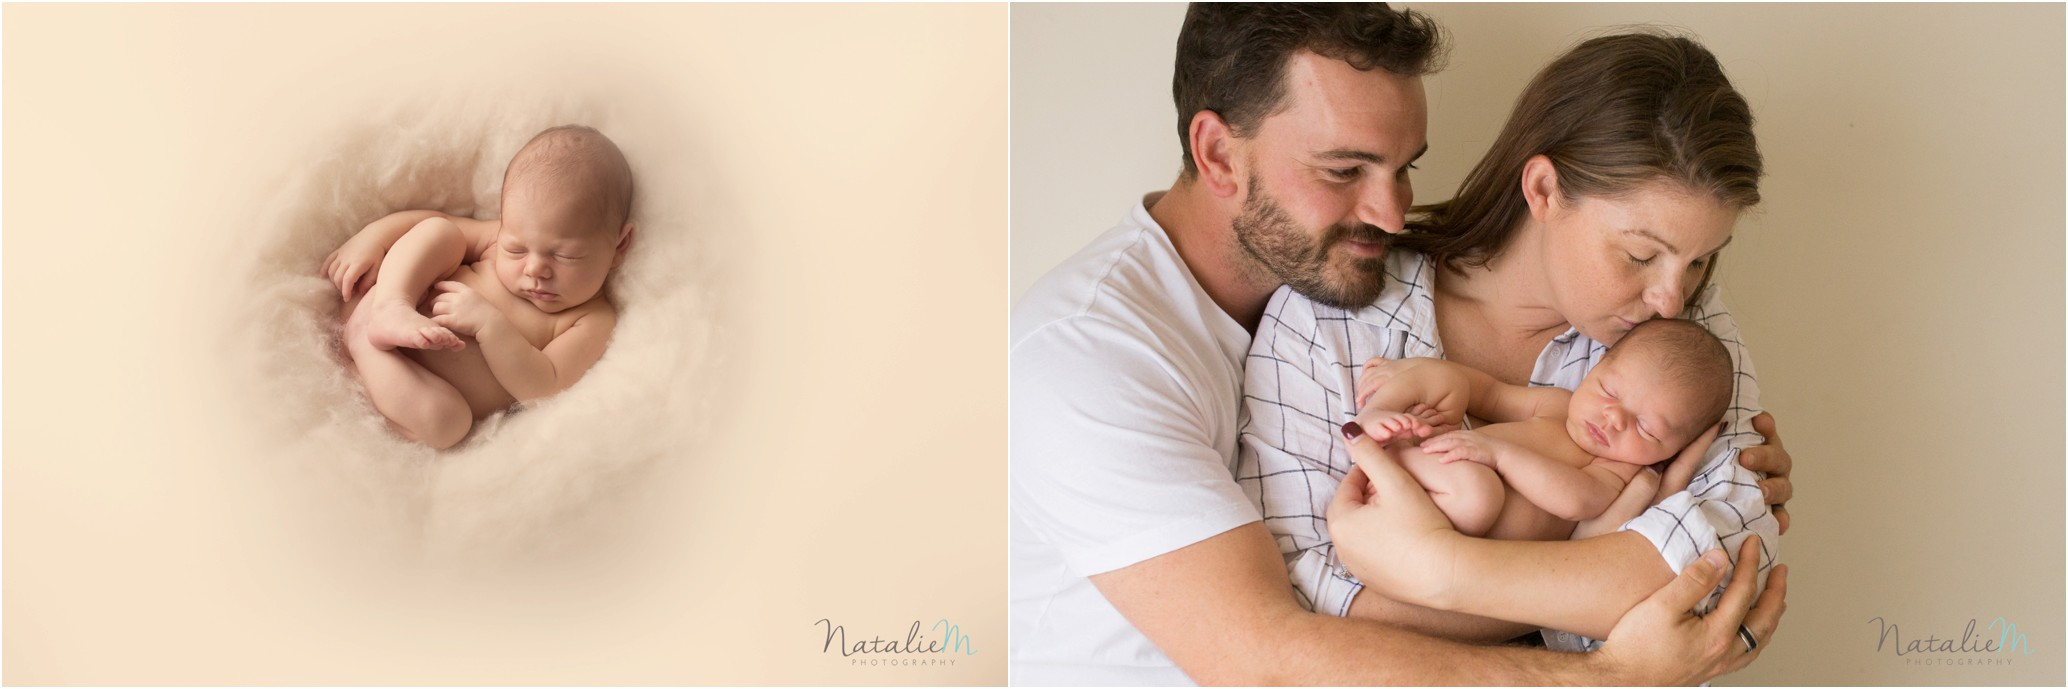 Newborn Photography Geelong_0949